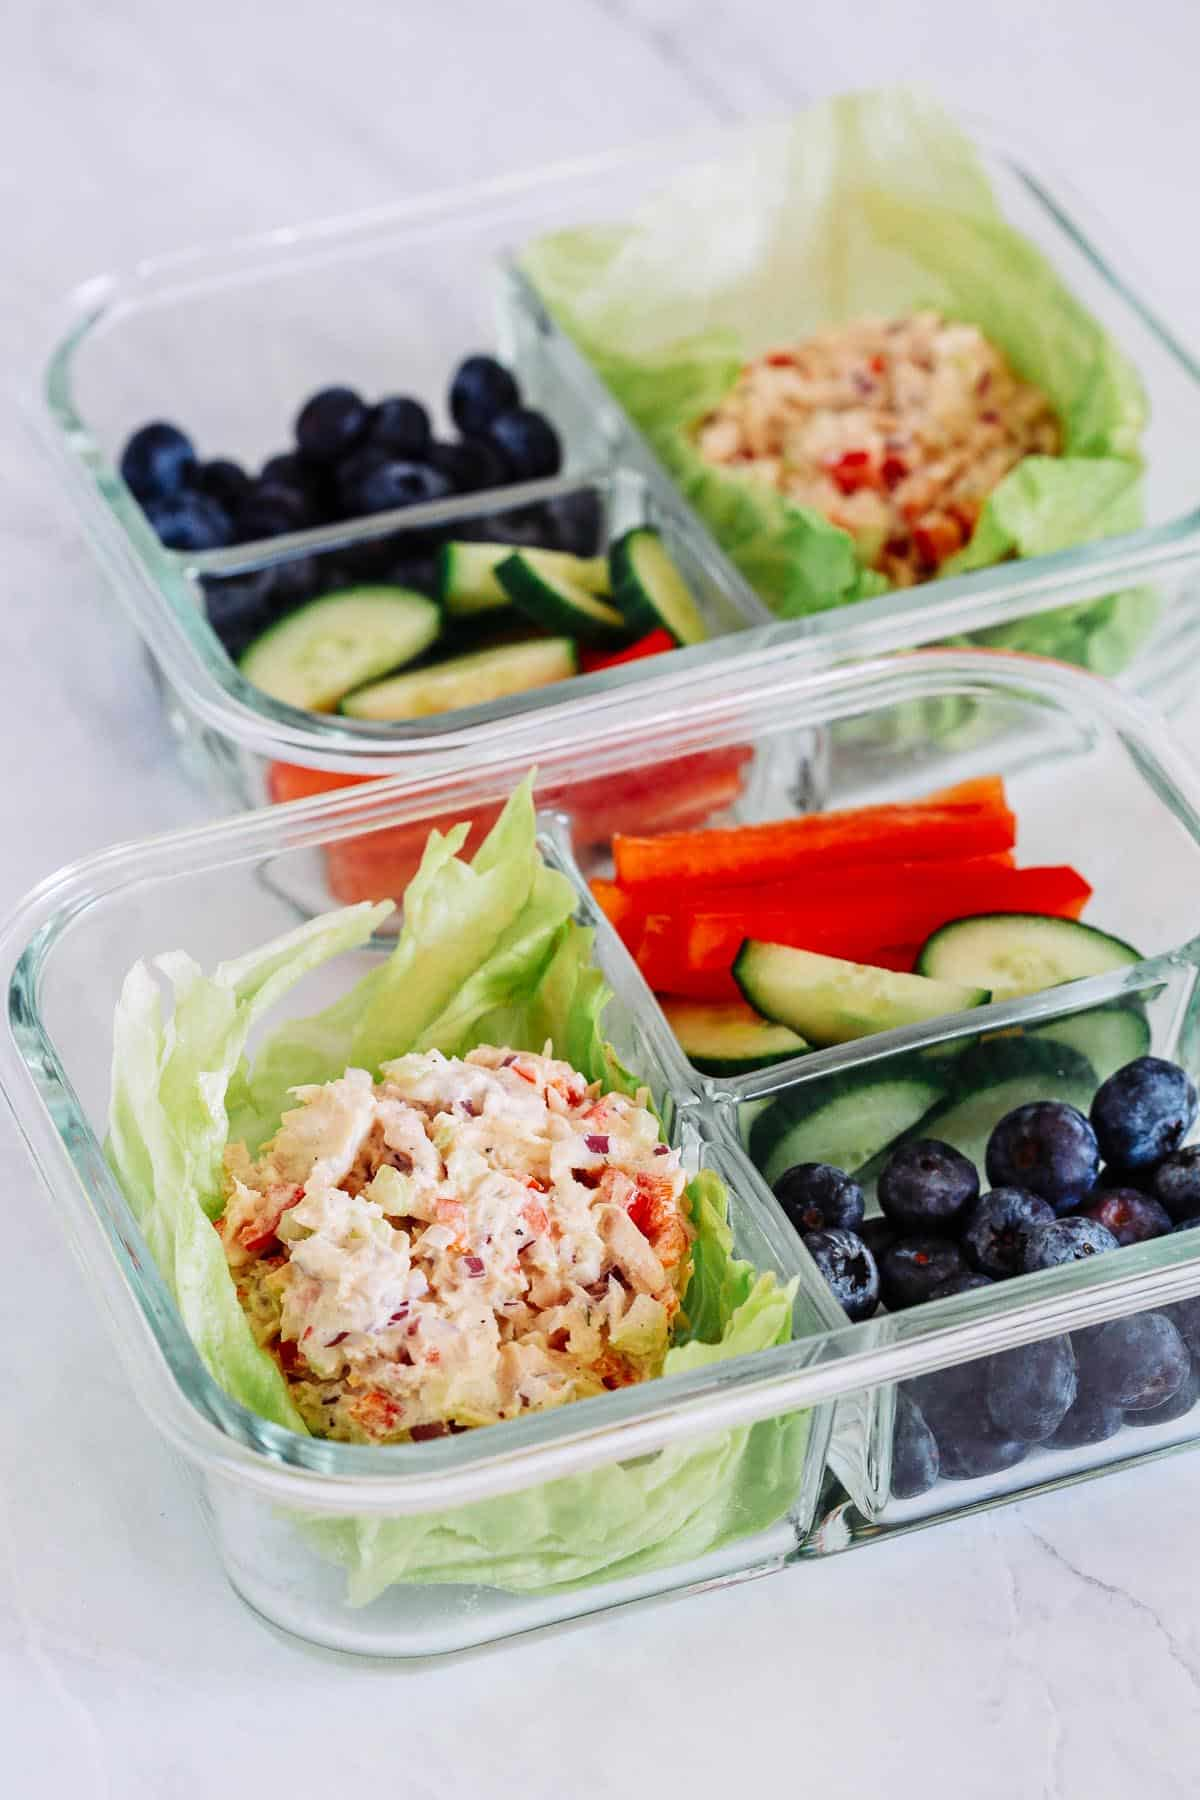 close up of Tuna Salad in a glass containers with veggies